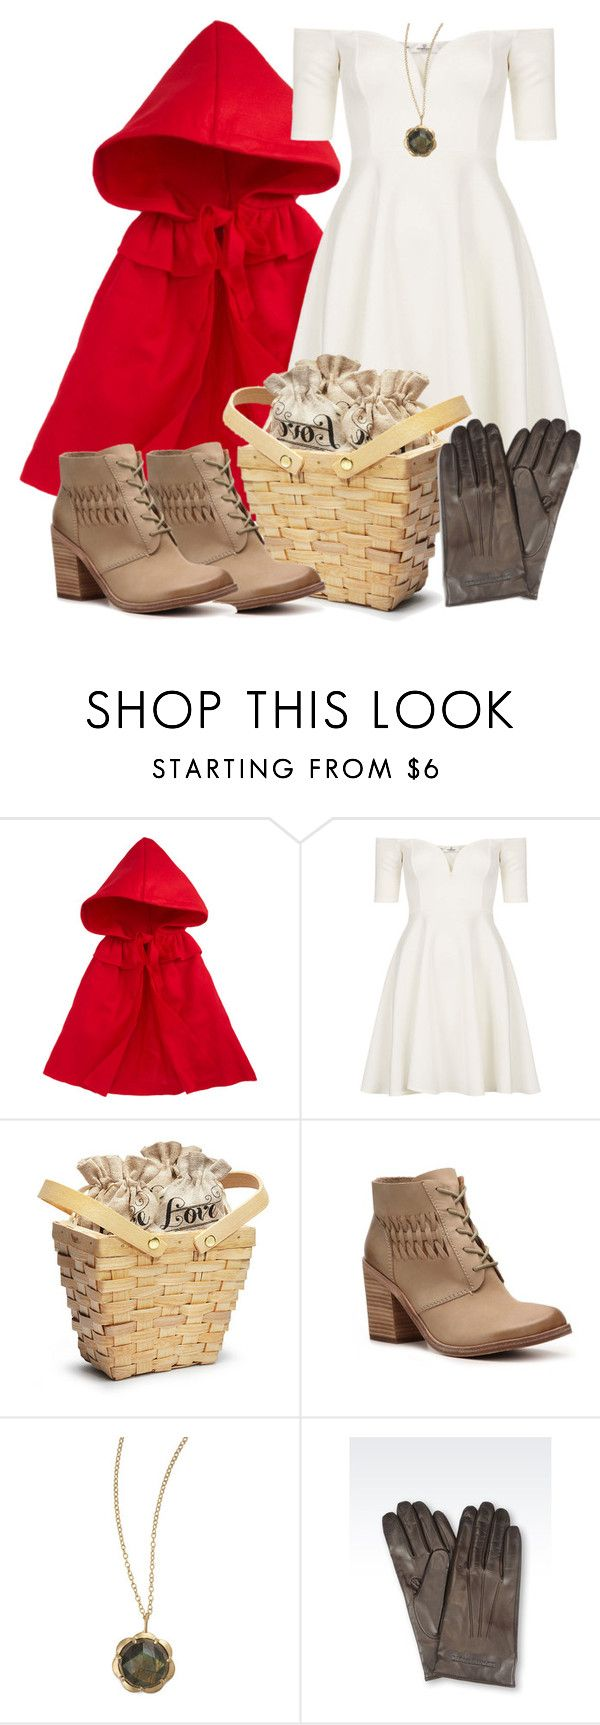 """Lydia Inspired Halloween Costume (Little Red Riding Hood)"" by veterization ❤ liked on Polyvore featuring Siaomimi, Oh My Love, Modern Vintage, Jamie Wolf and Emporio Armani"